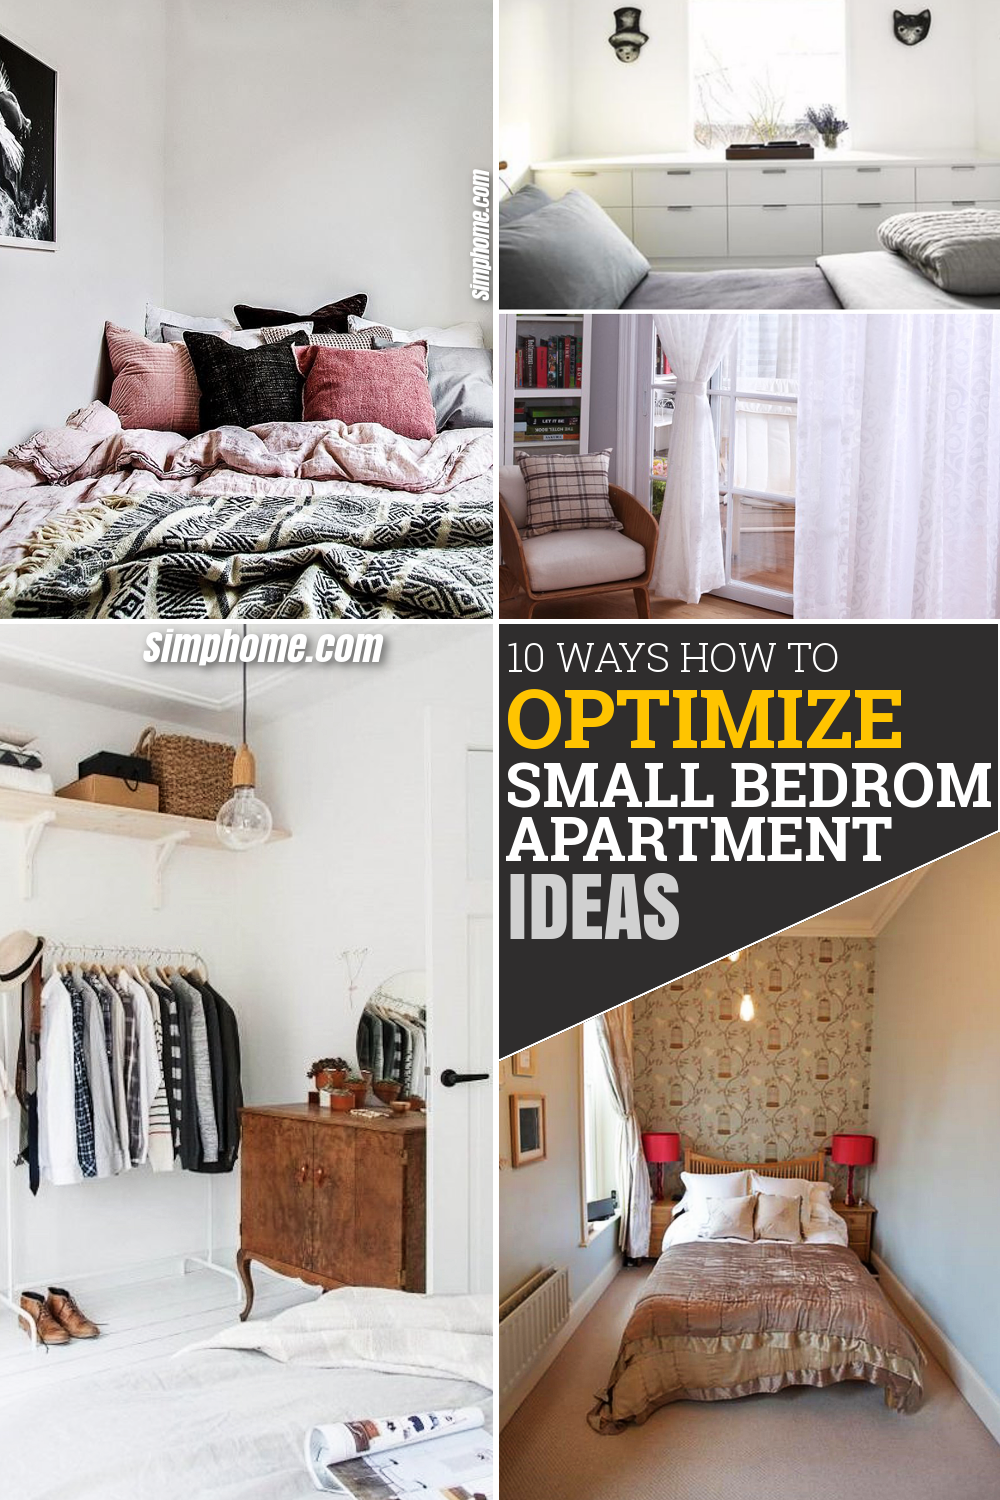 10 WAYS How to Optimize a Small Bedroom Apartment via Simphome Pinterest Featured Image